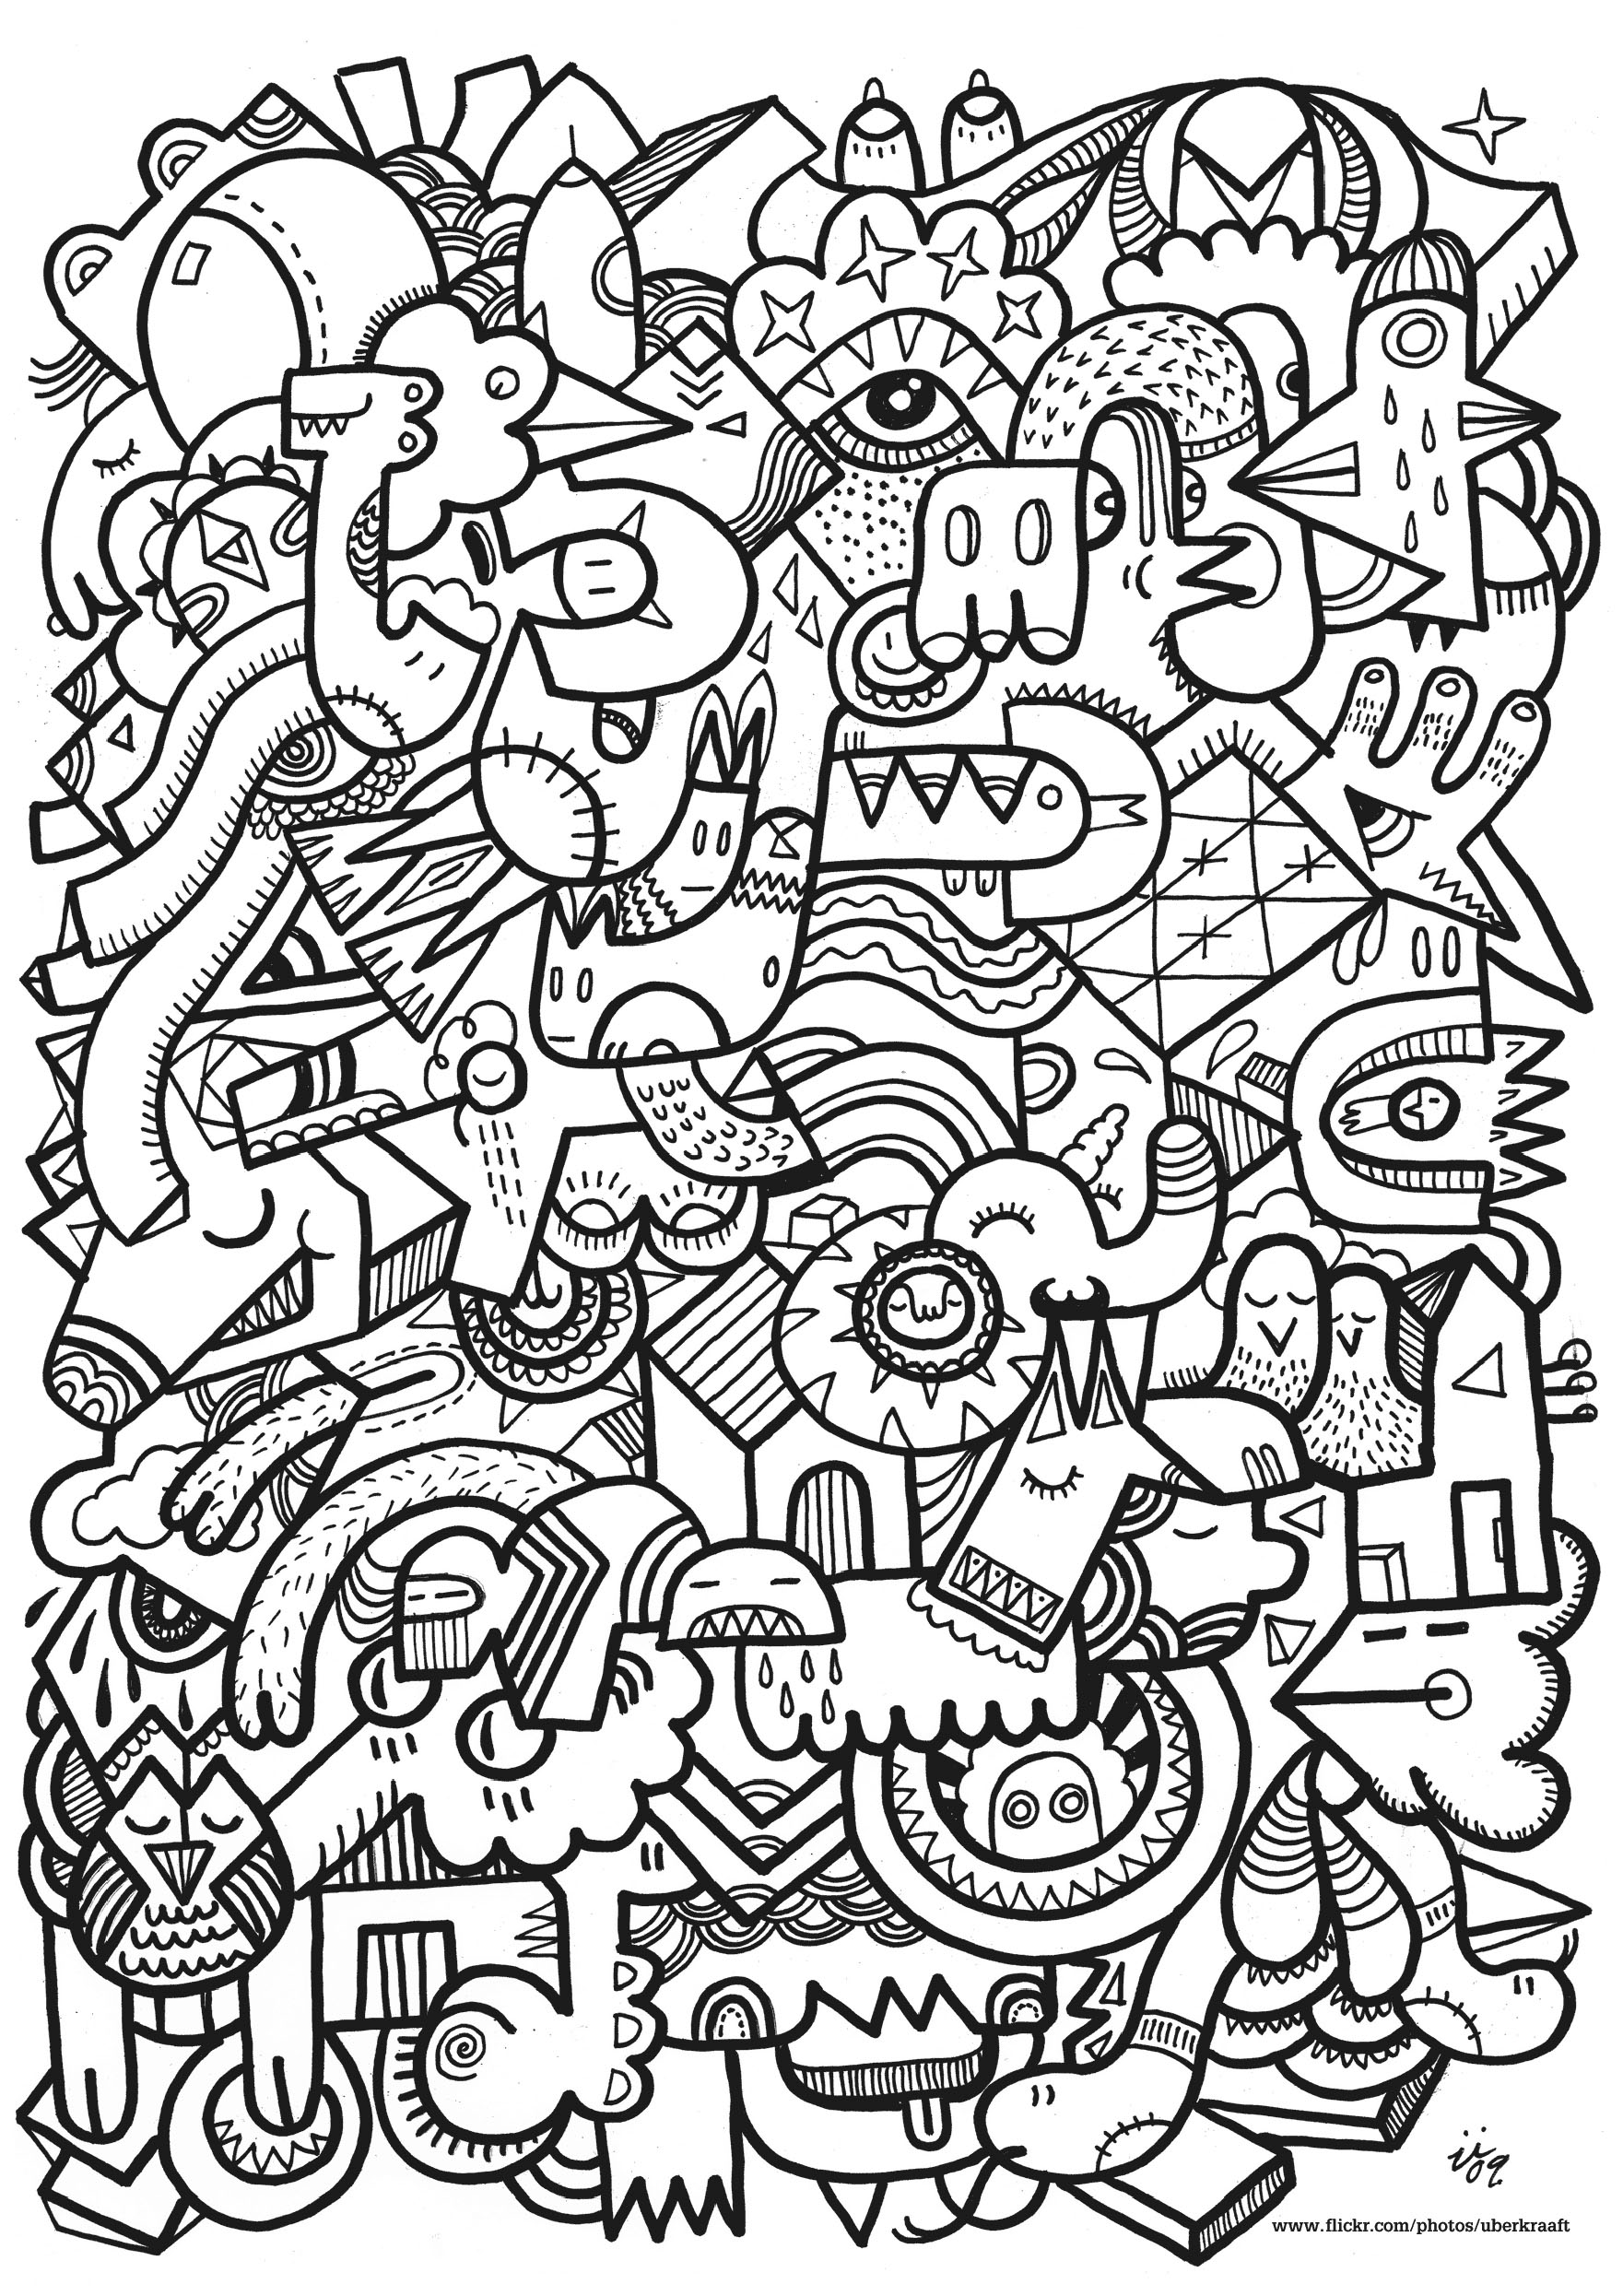 Doodling doodle art 7 doodles coloriages difficiles - Coloriage art ...